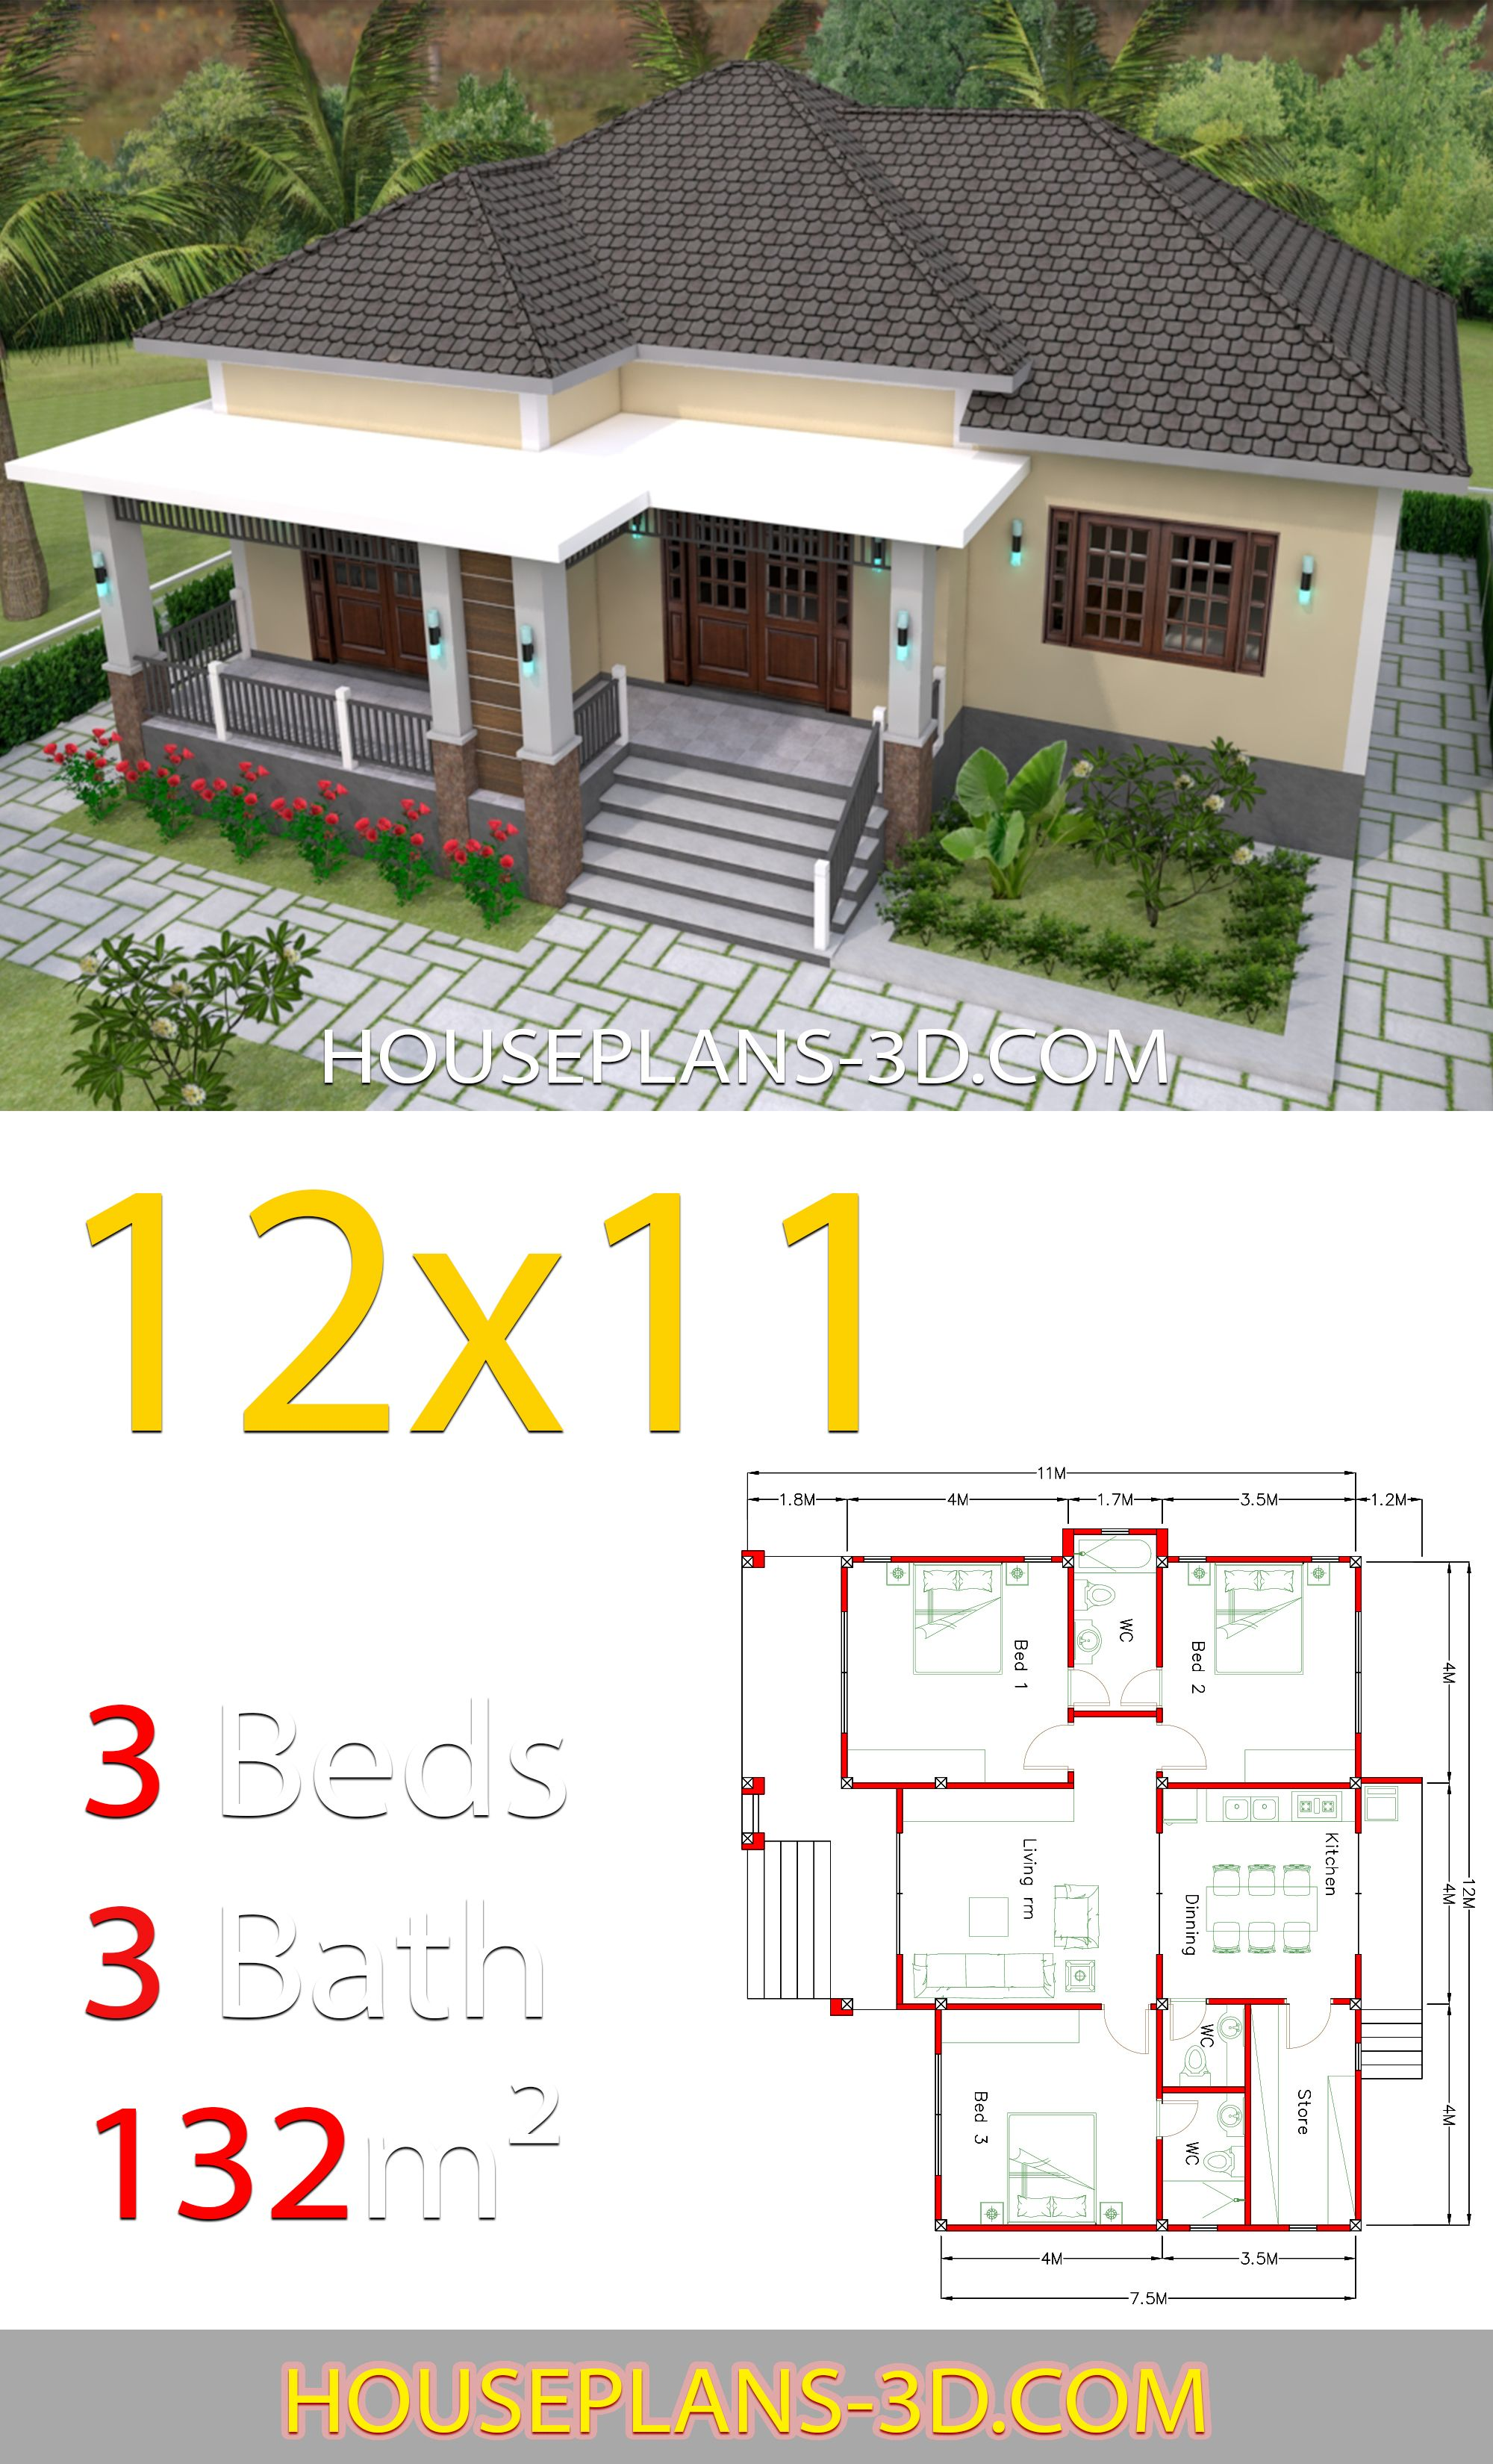 Home Design 12x11 With 3 Bedrooms Hip Roof In 2020 House Plan Gallery House Roof Model House Plan